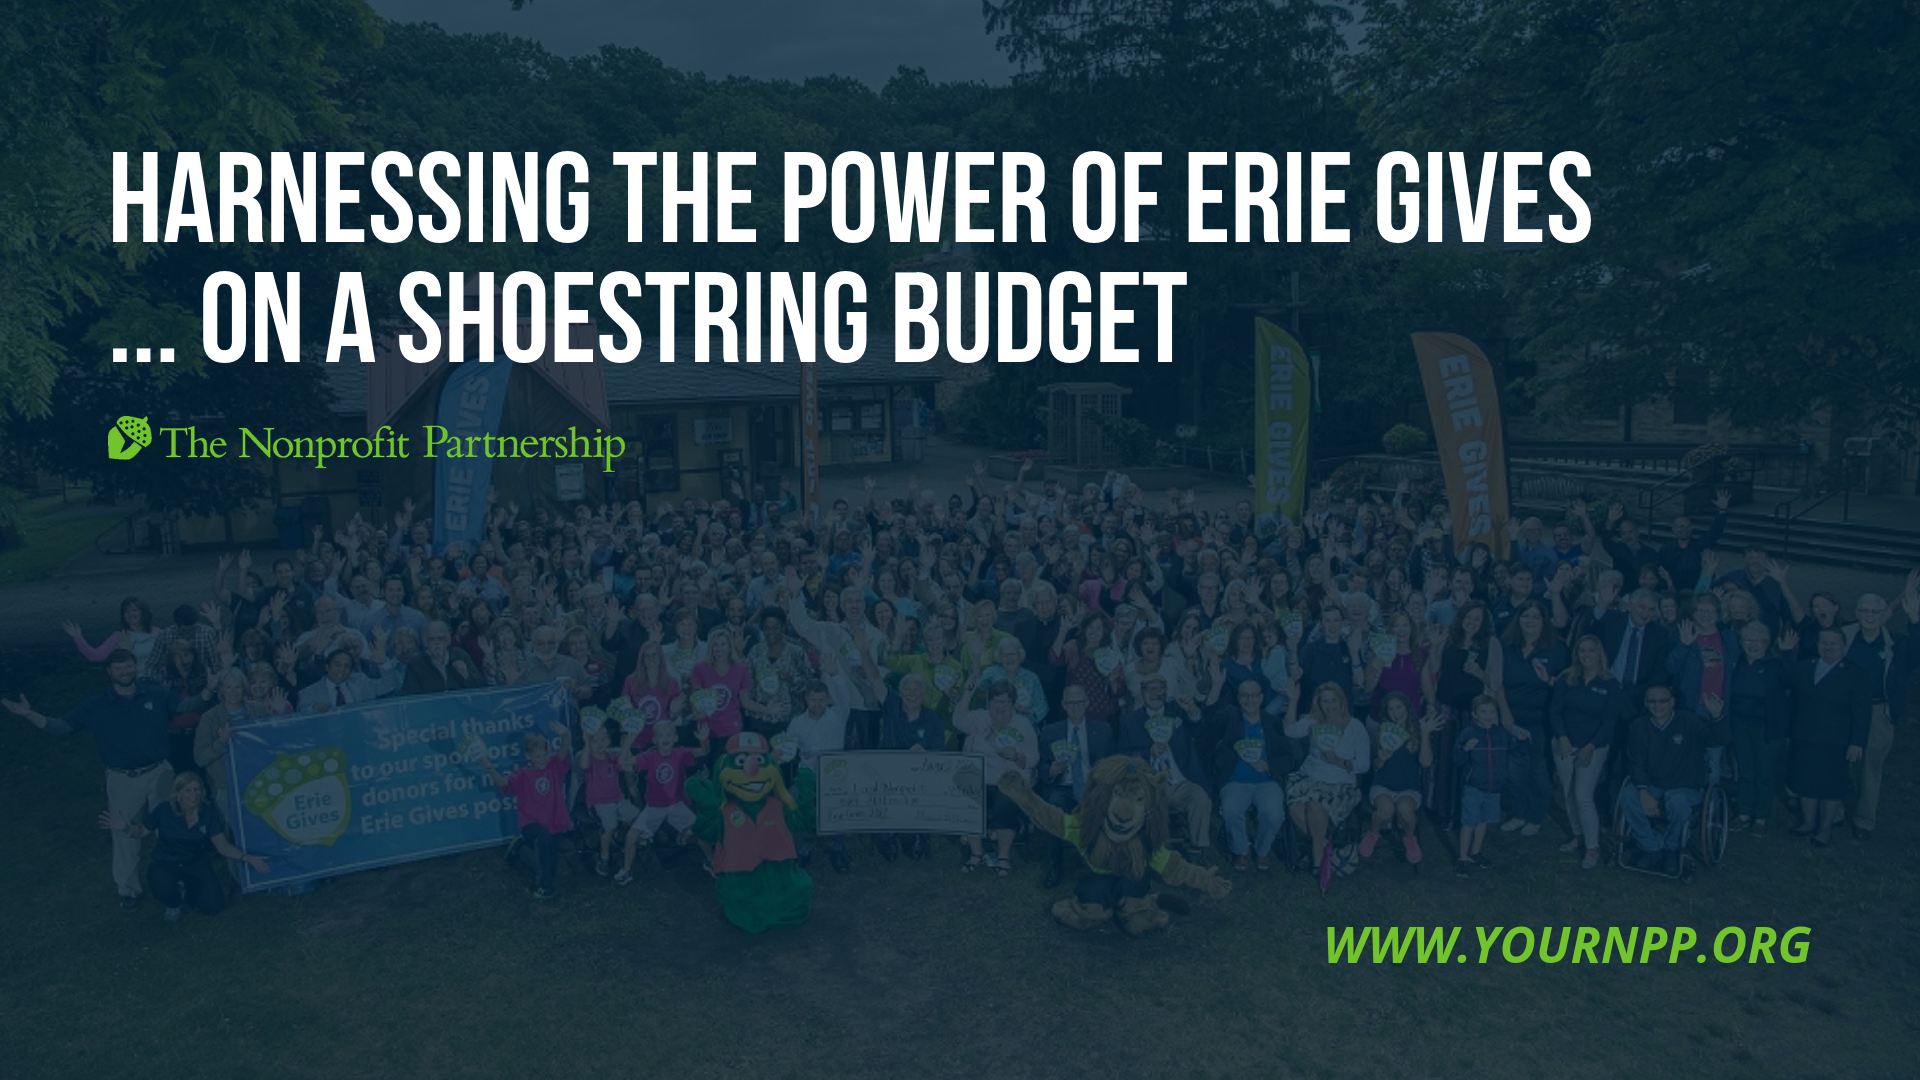 Harnessing the Power of Erie Gives... on a Shoestring Budget